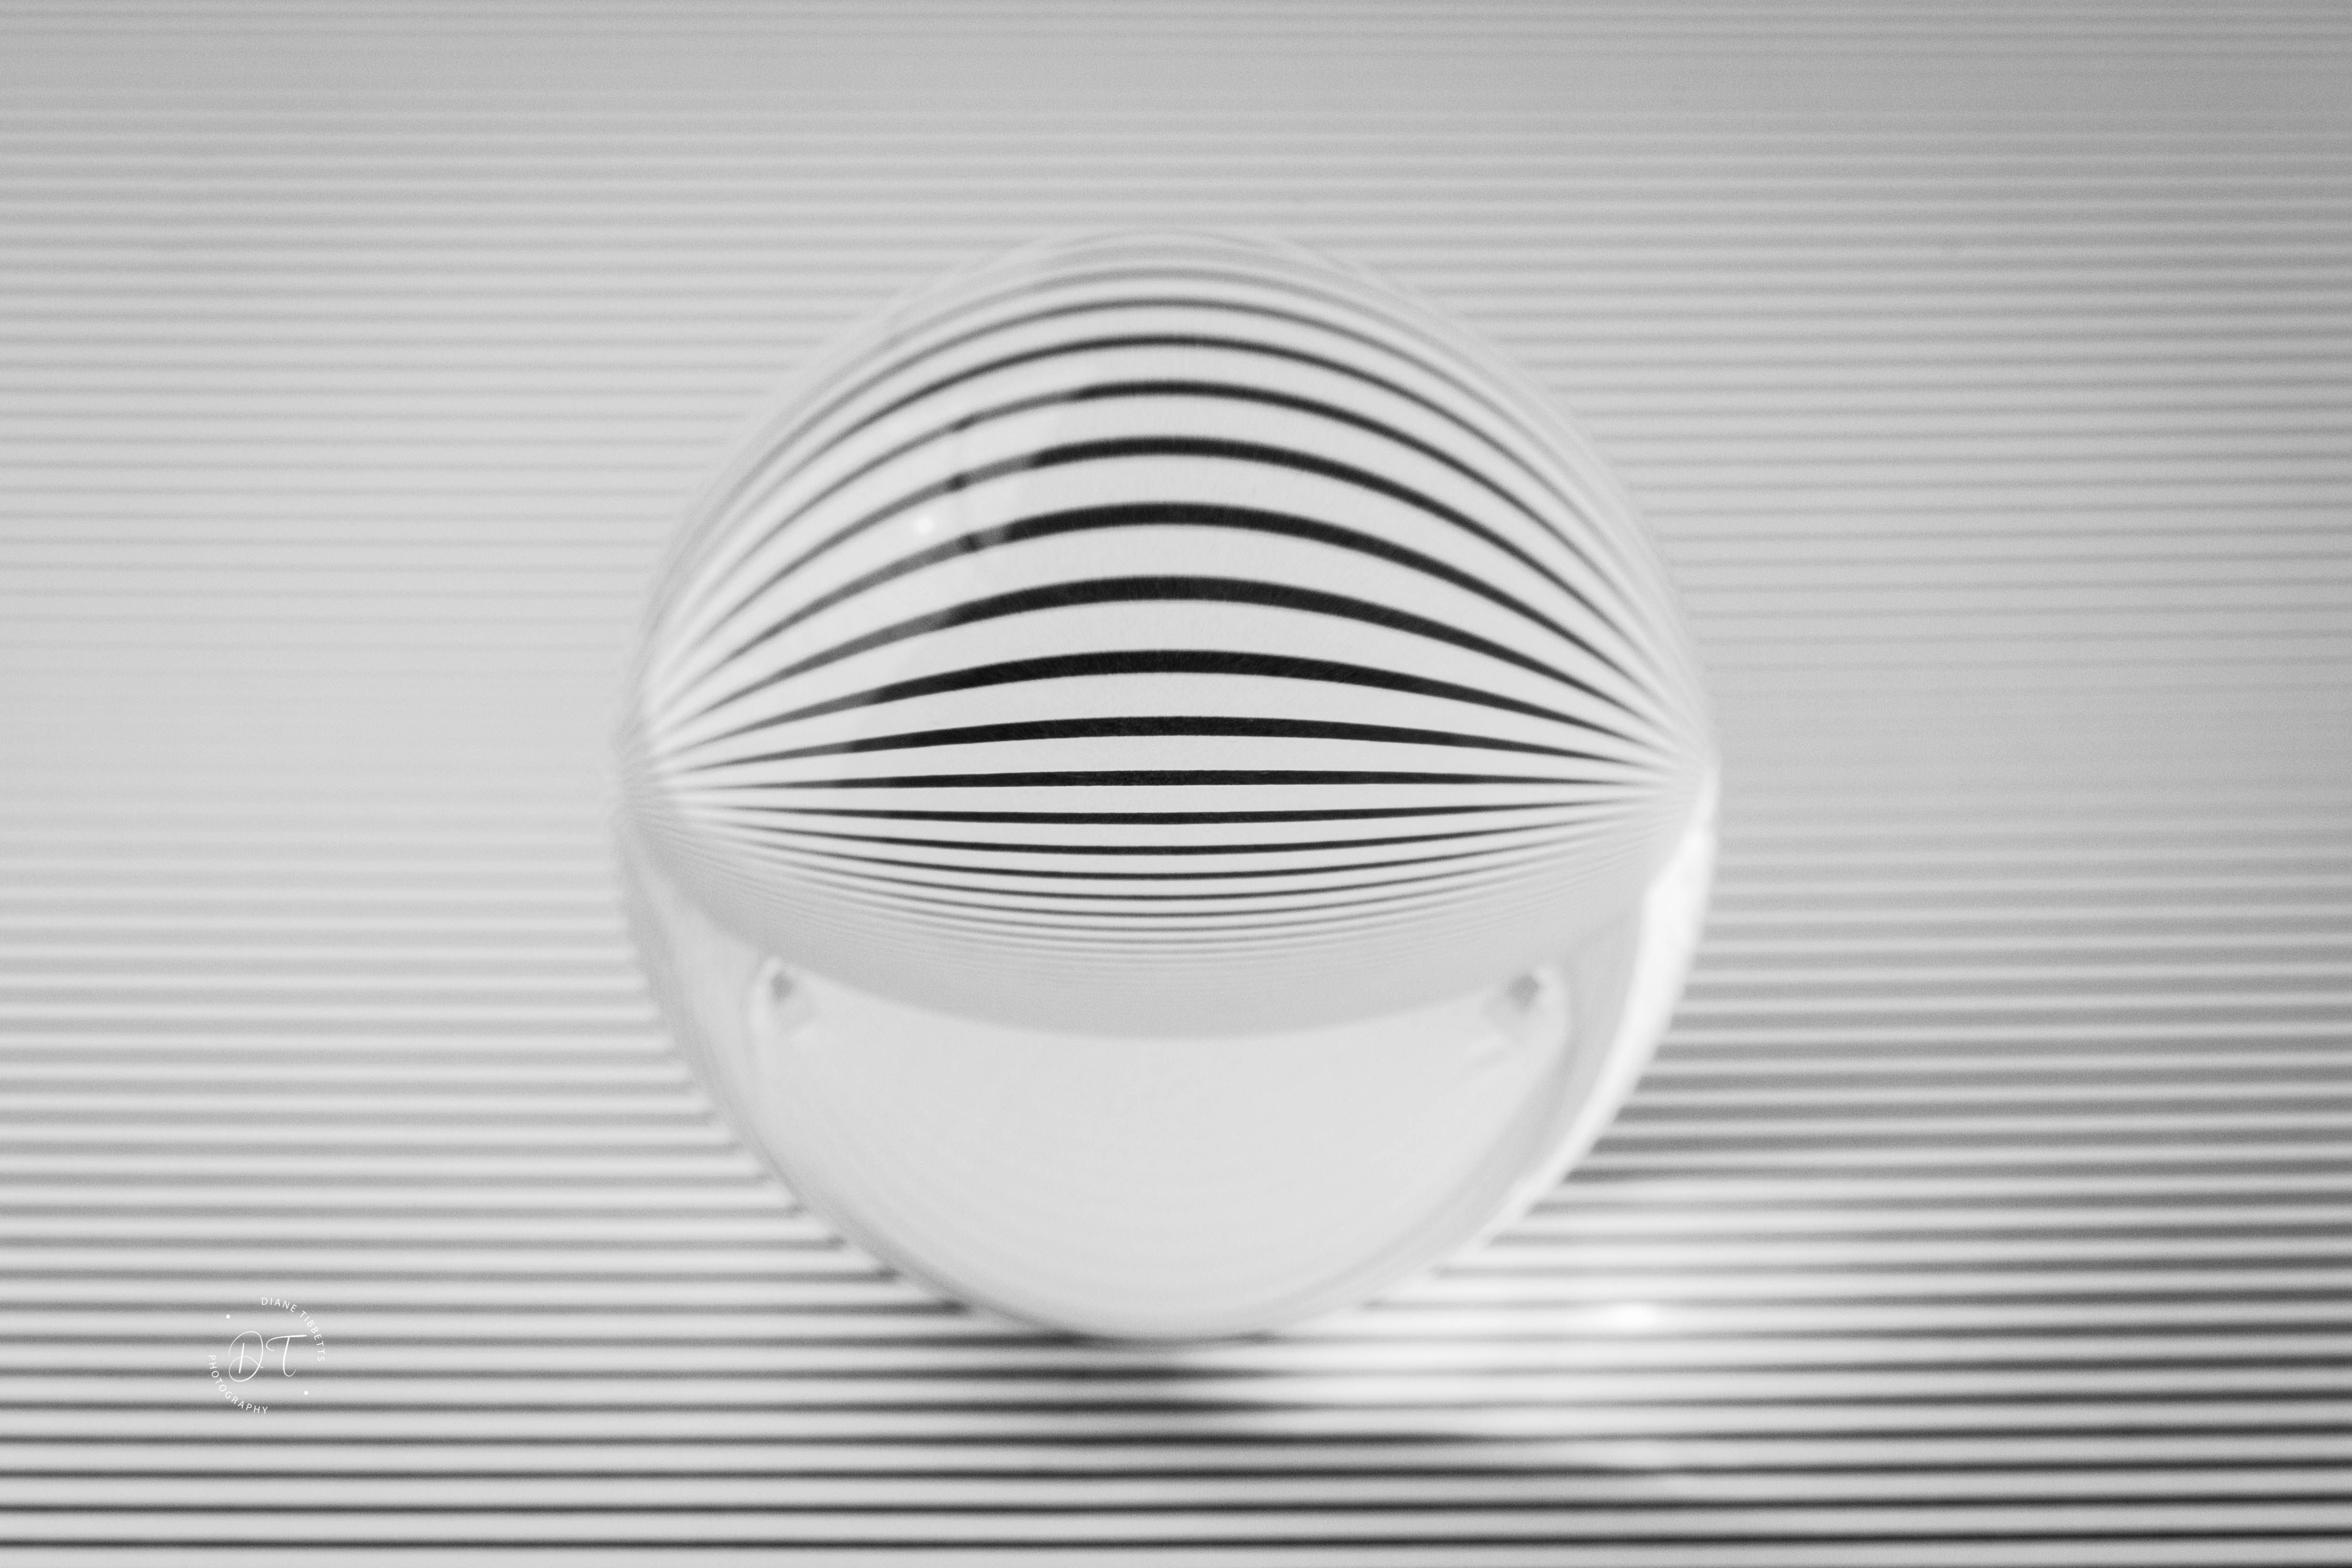 #365project #lensball #refractionphotography #abstractphotography #lensballphotography